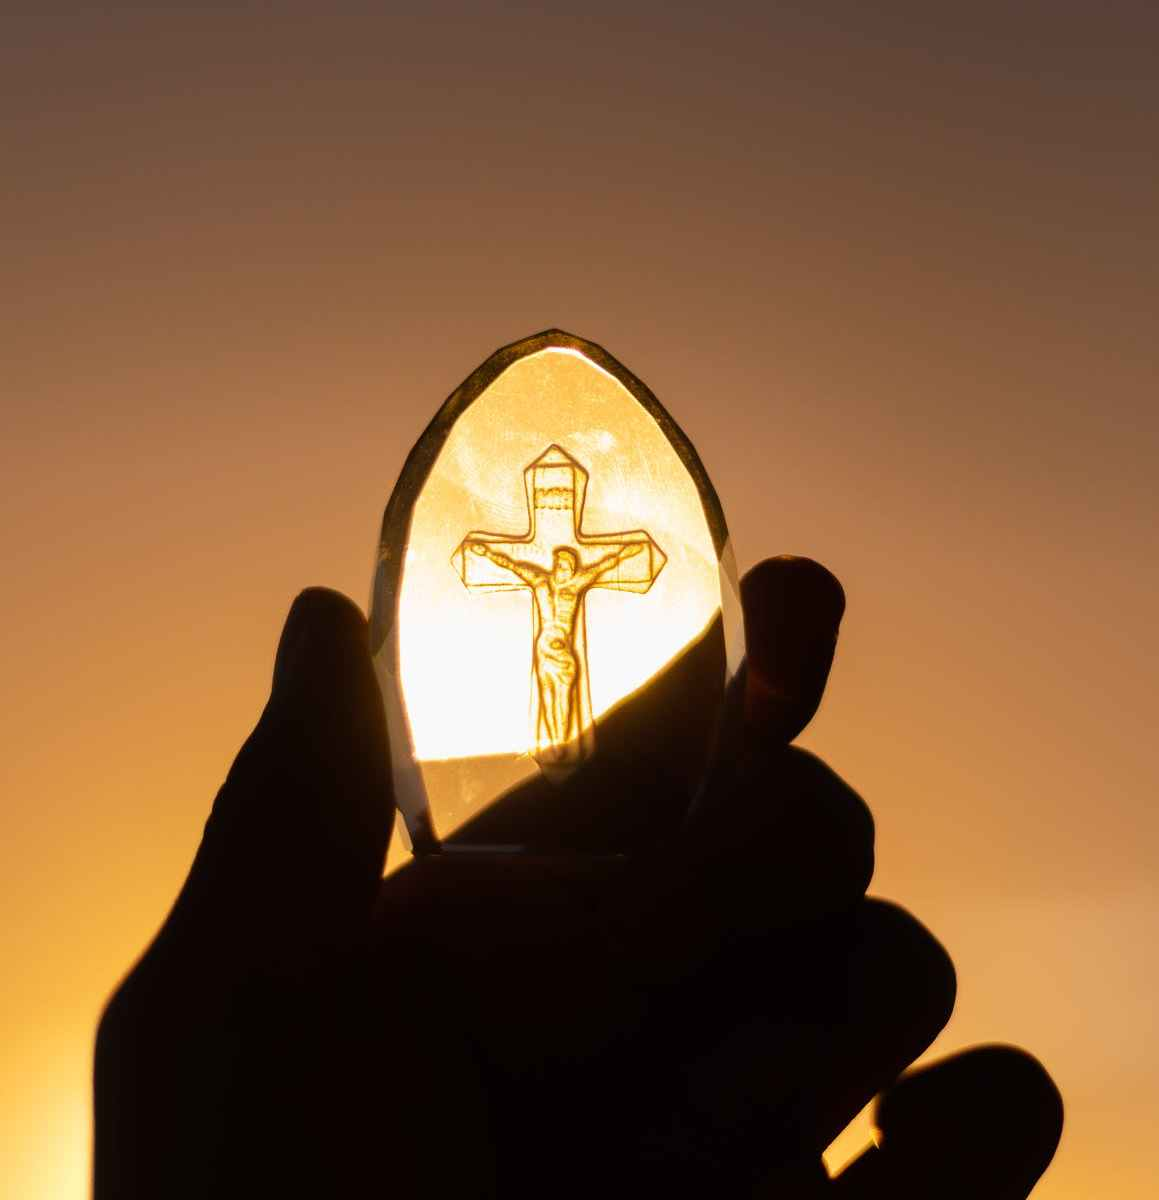 Person's hand holding glass of Jesus Christ on cross